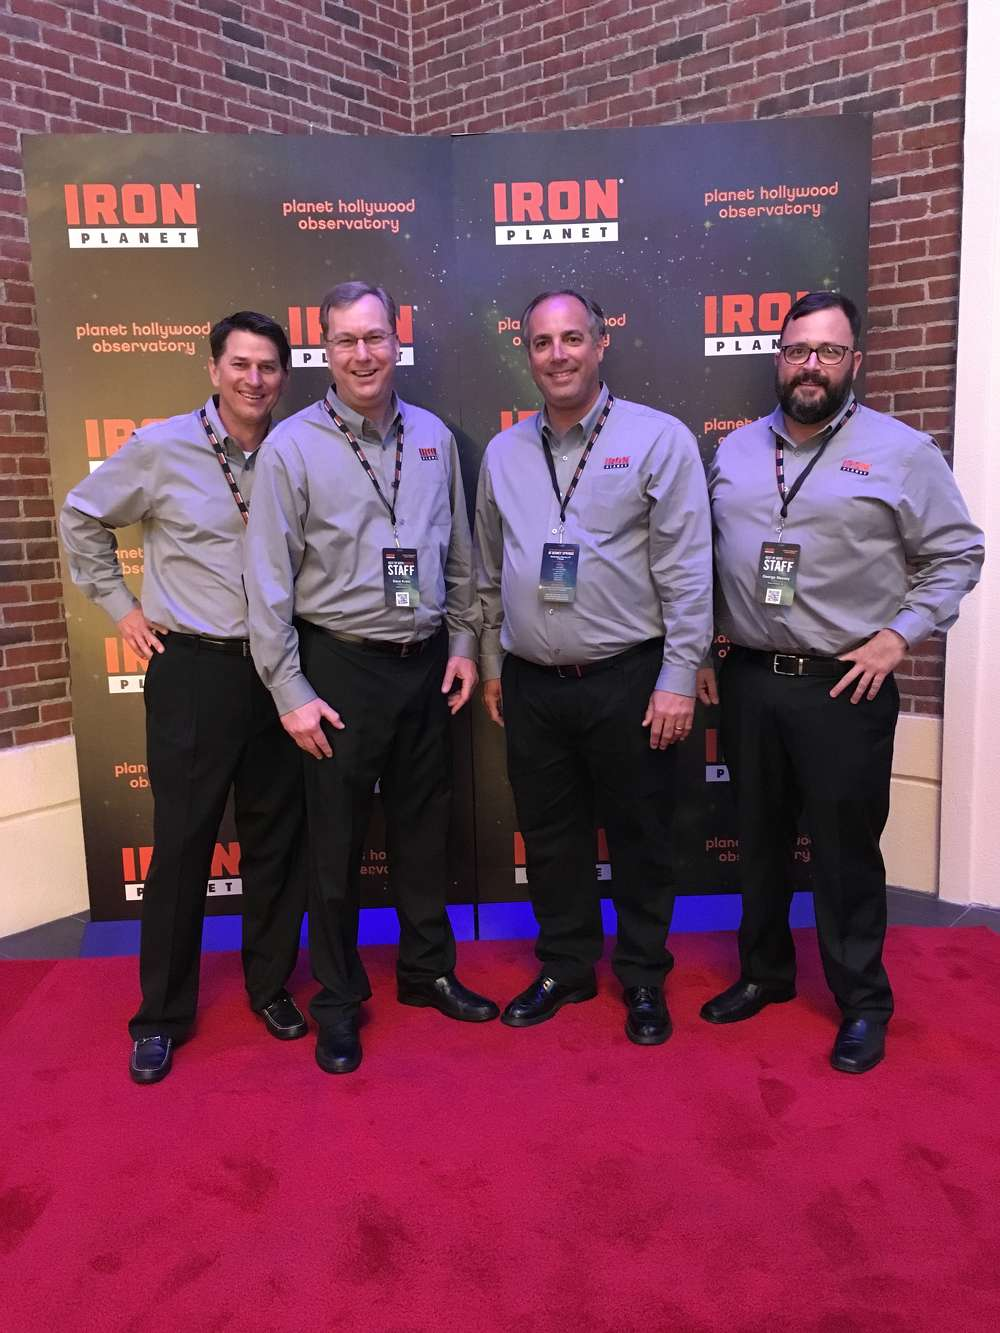 Ready for a hugely successful Florida Auctions (L-R) are Randy Wynn, sales director-Coastal South region; Dave Kreis, sales director-Northeast region; Tom Ferguson, sales director-Florida region; and George Massey, sales director-Southeast region, all of IronPlanet.